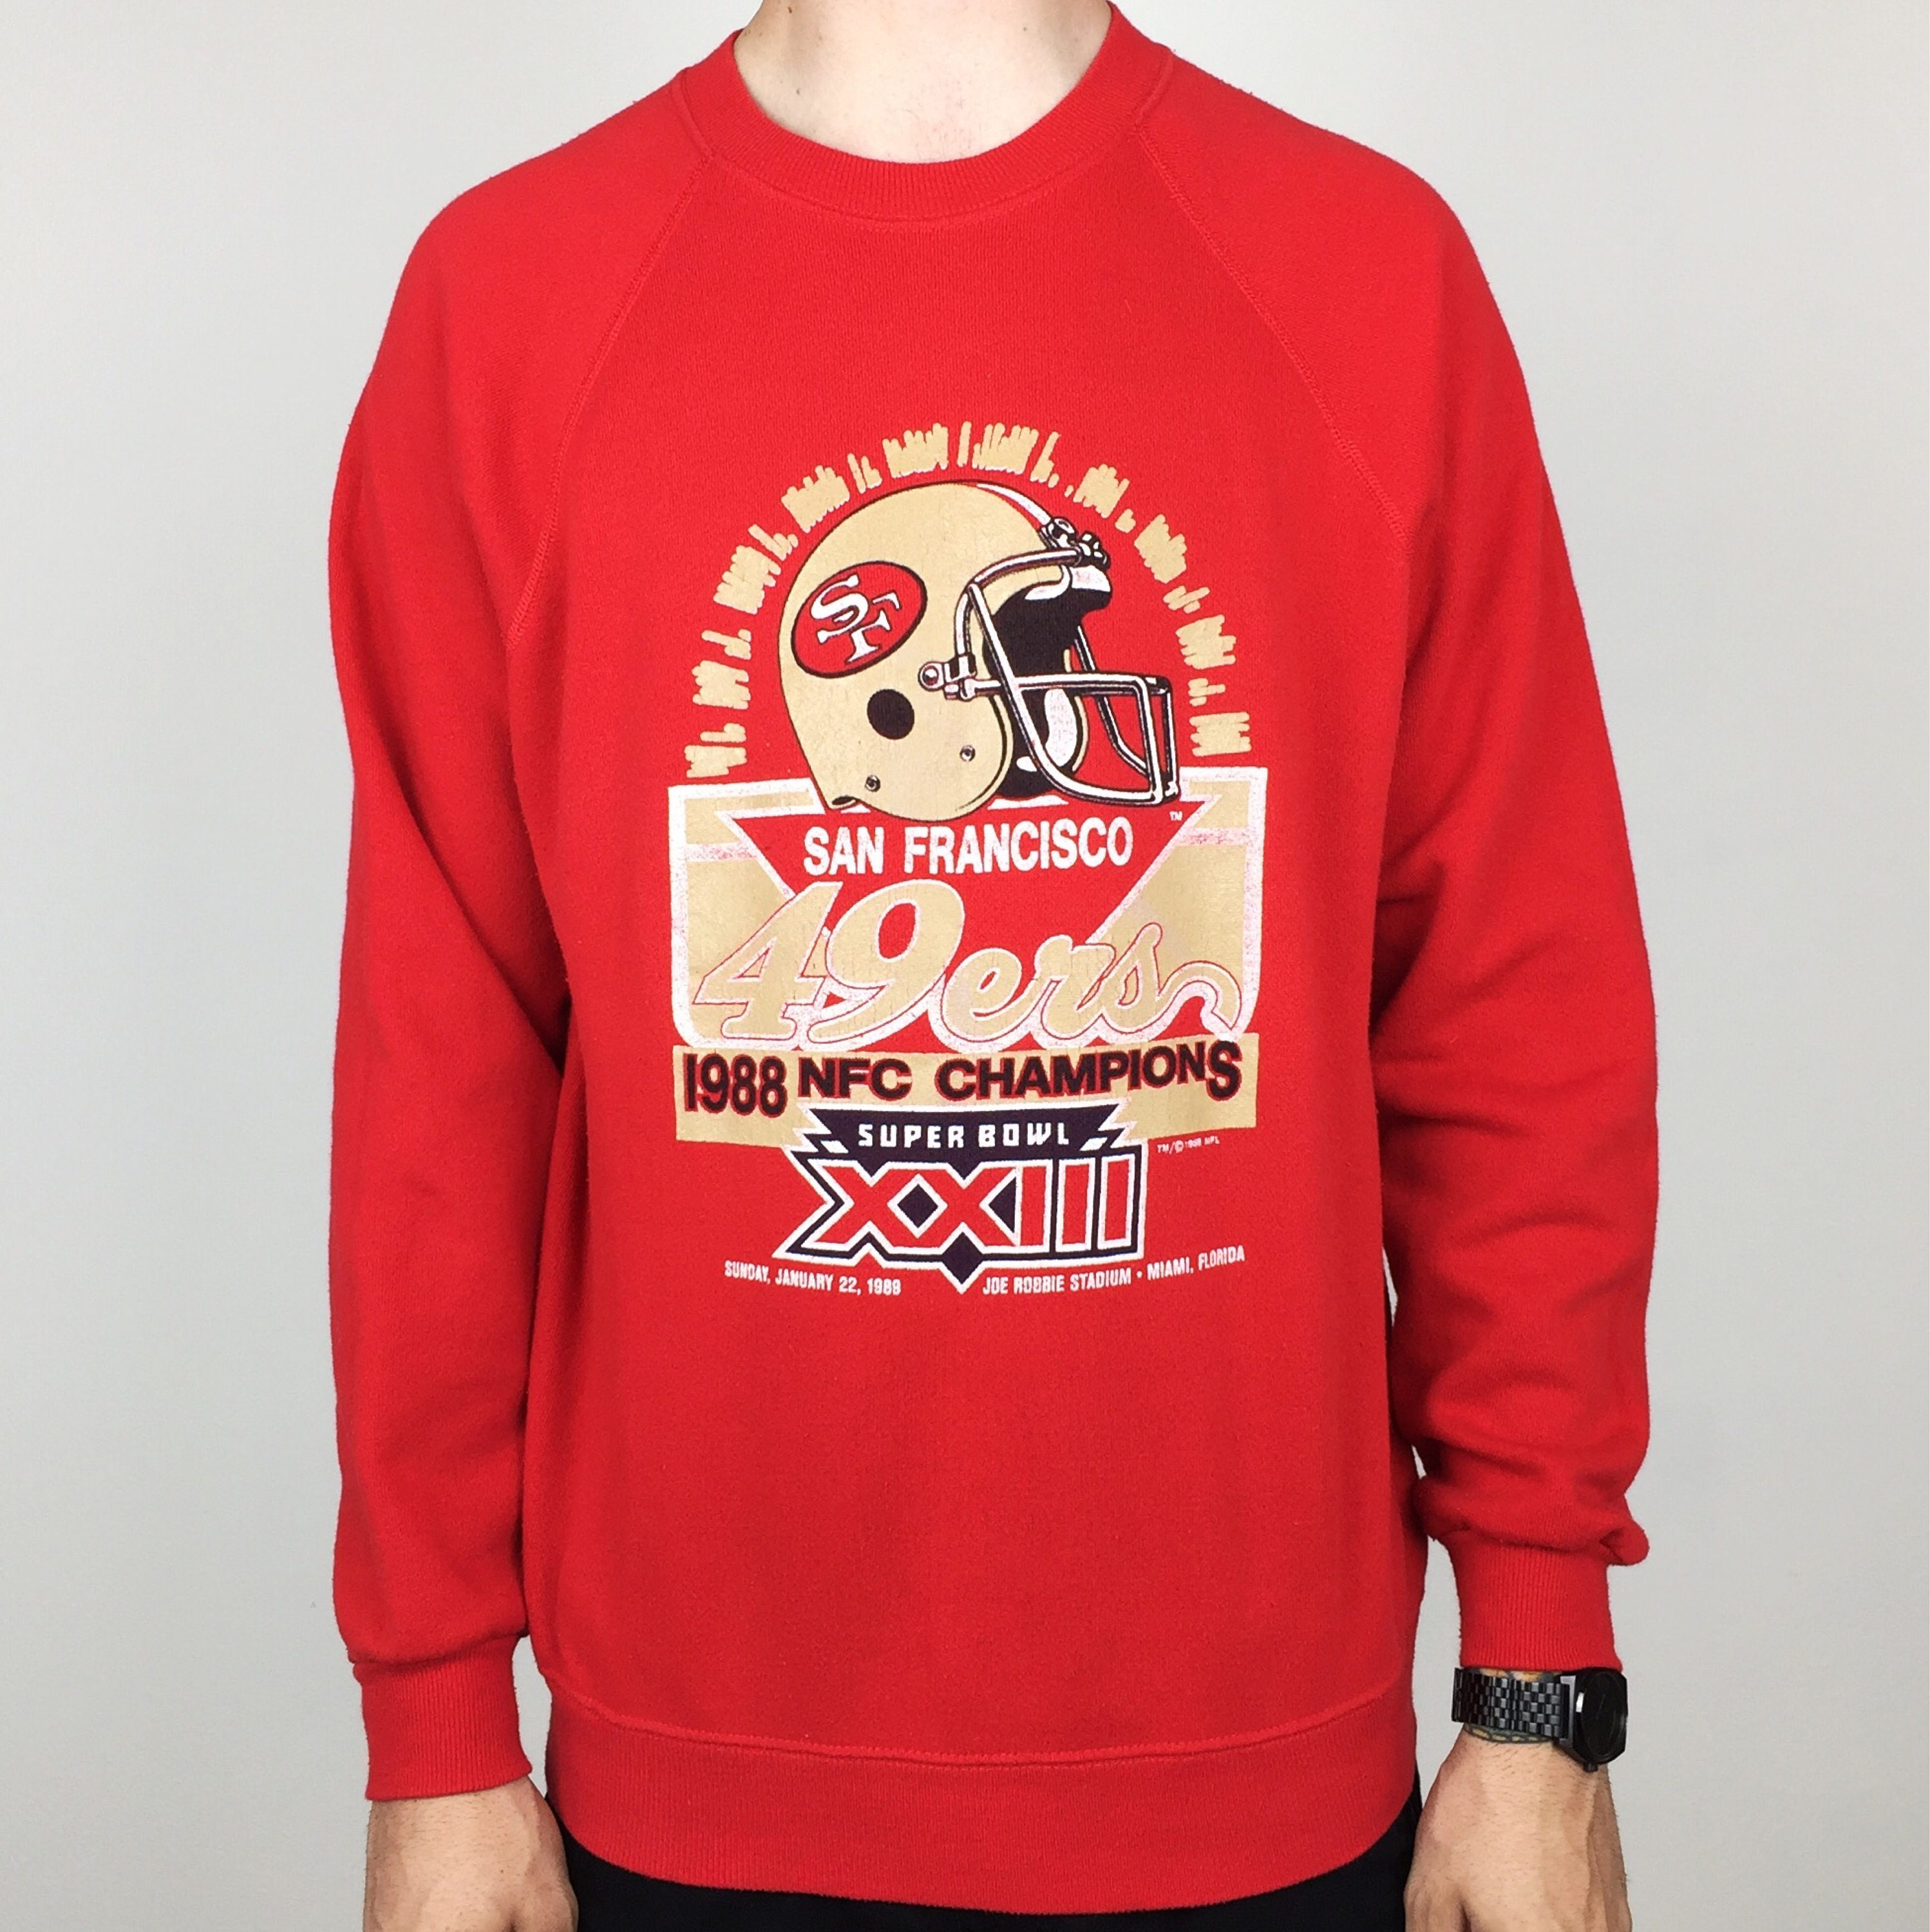 Rare Vintage 80s 1988 88 NFL San Francisco 49ers  88 NFC Champions Champs  Super Bowl XXIII pull over crewneck football sweatshirt - Size M-L 663974ff9